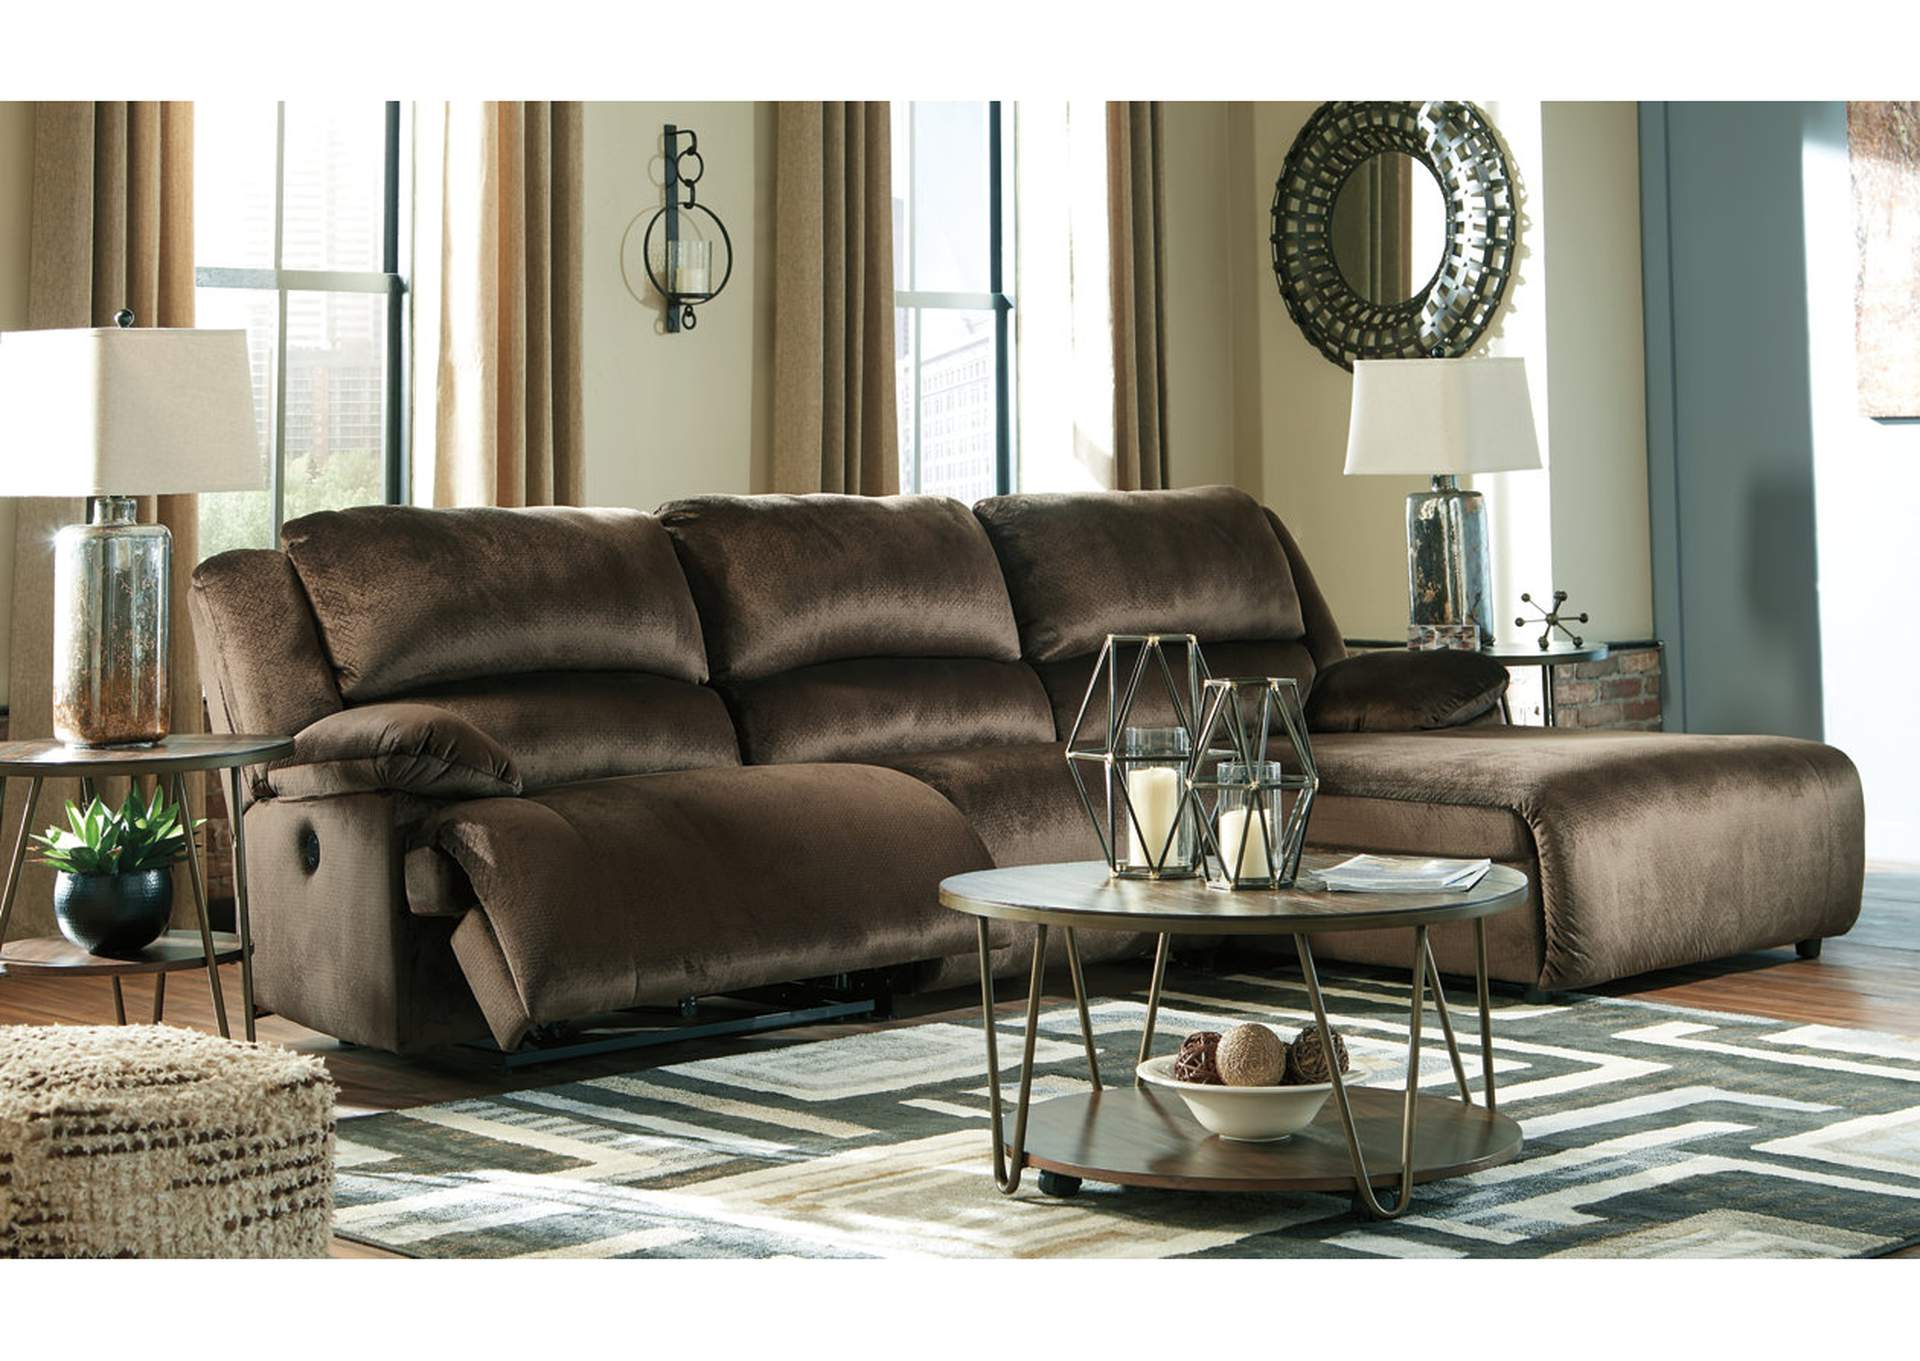 Clonmel Chocolate 3 Piece RAF Chaise Sectional,Signature Design By Ashley